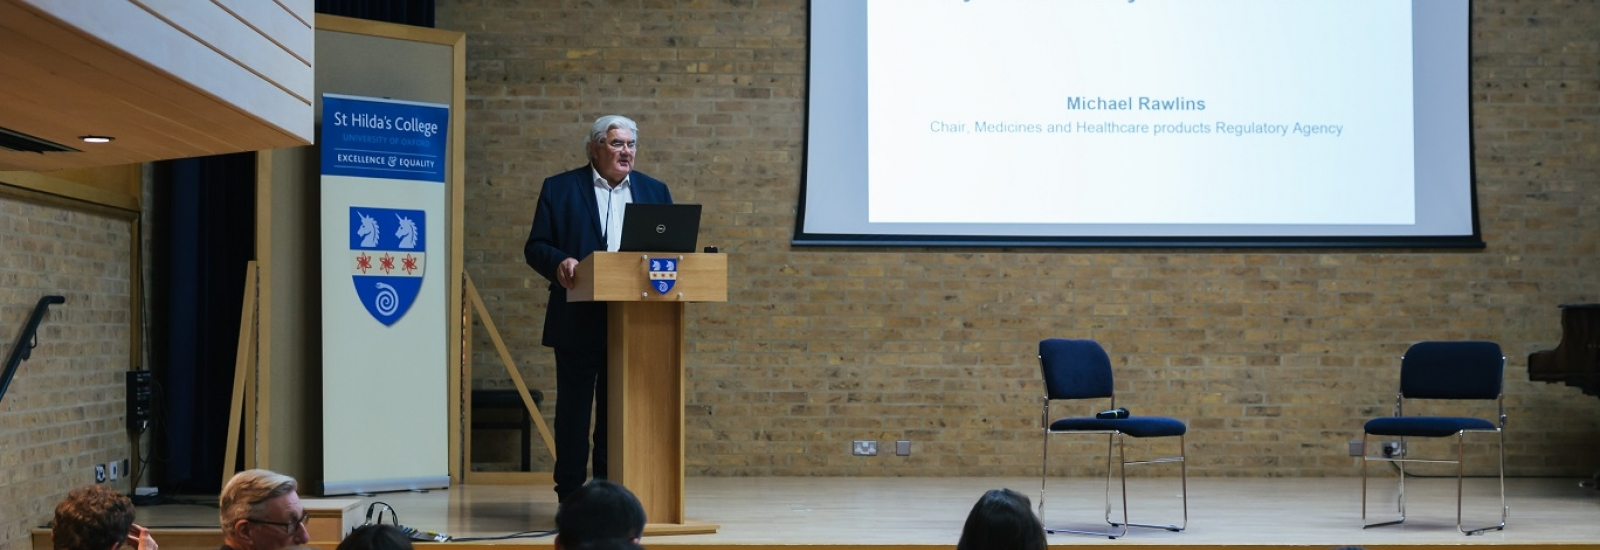 Professor Sir Gordon Duff introduces the inaugural lecture for the Centre for Clinical Therapeutics at St Hilda's College